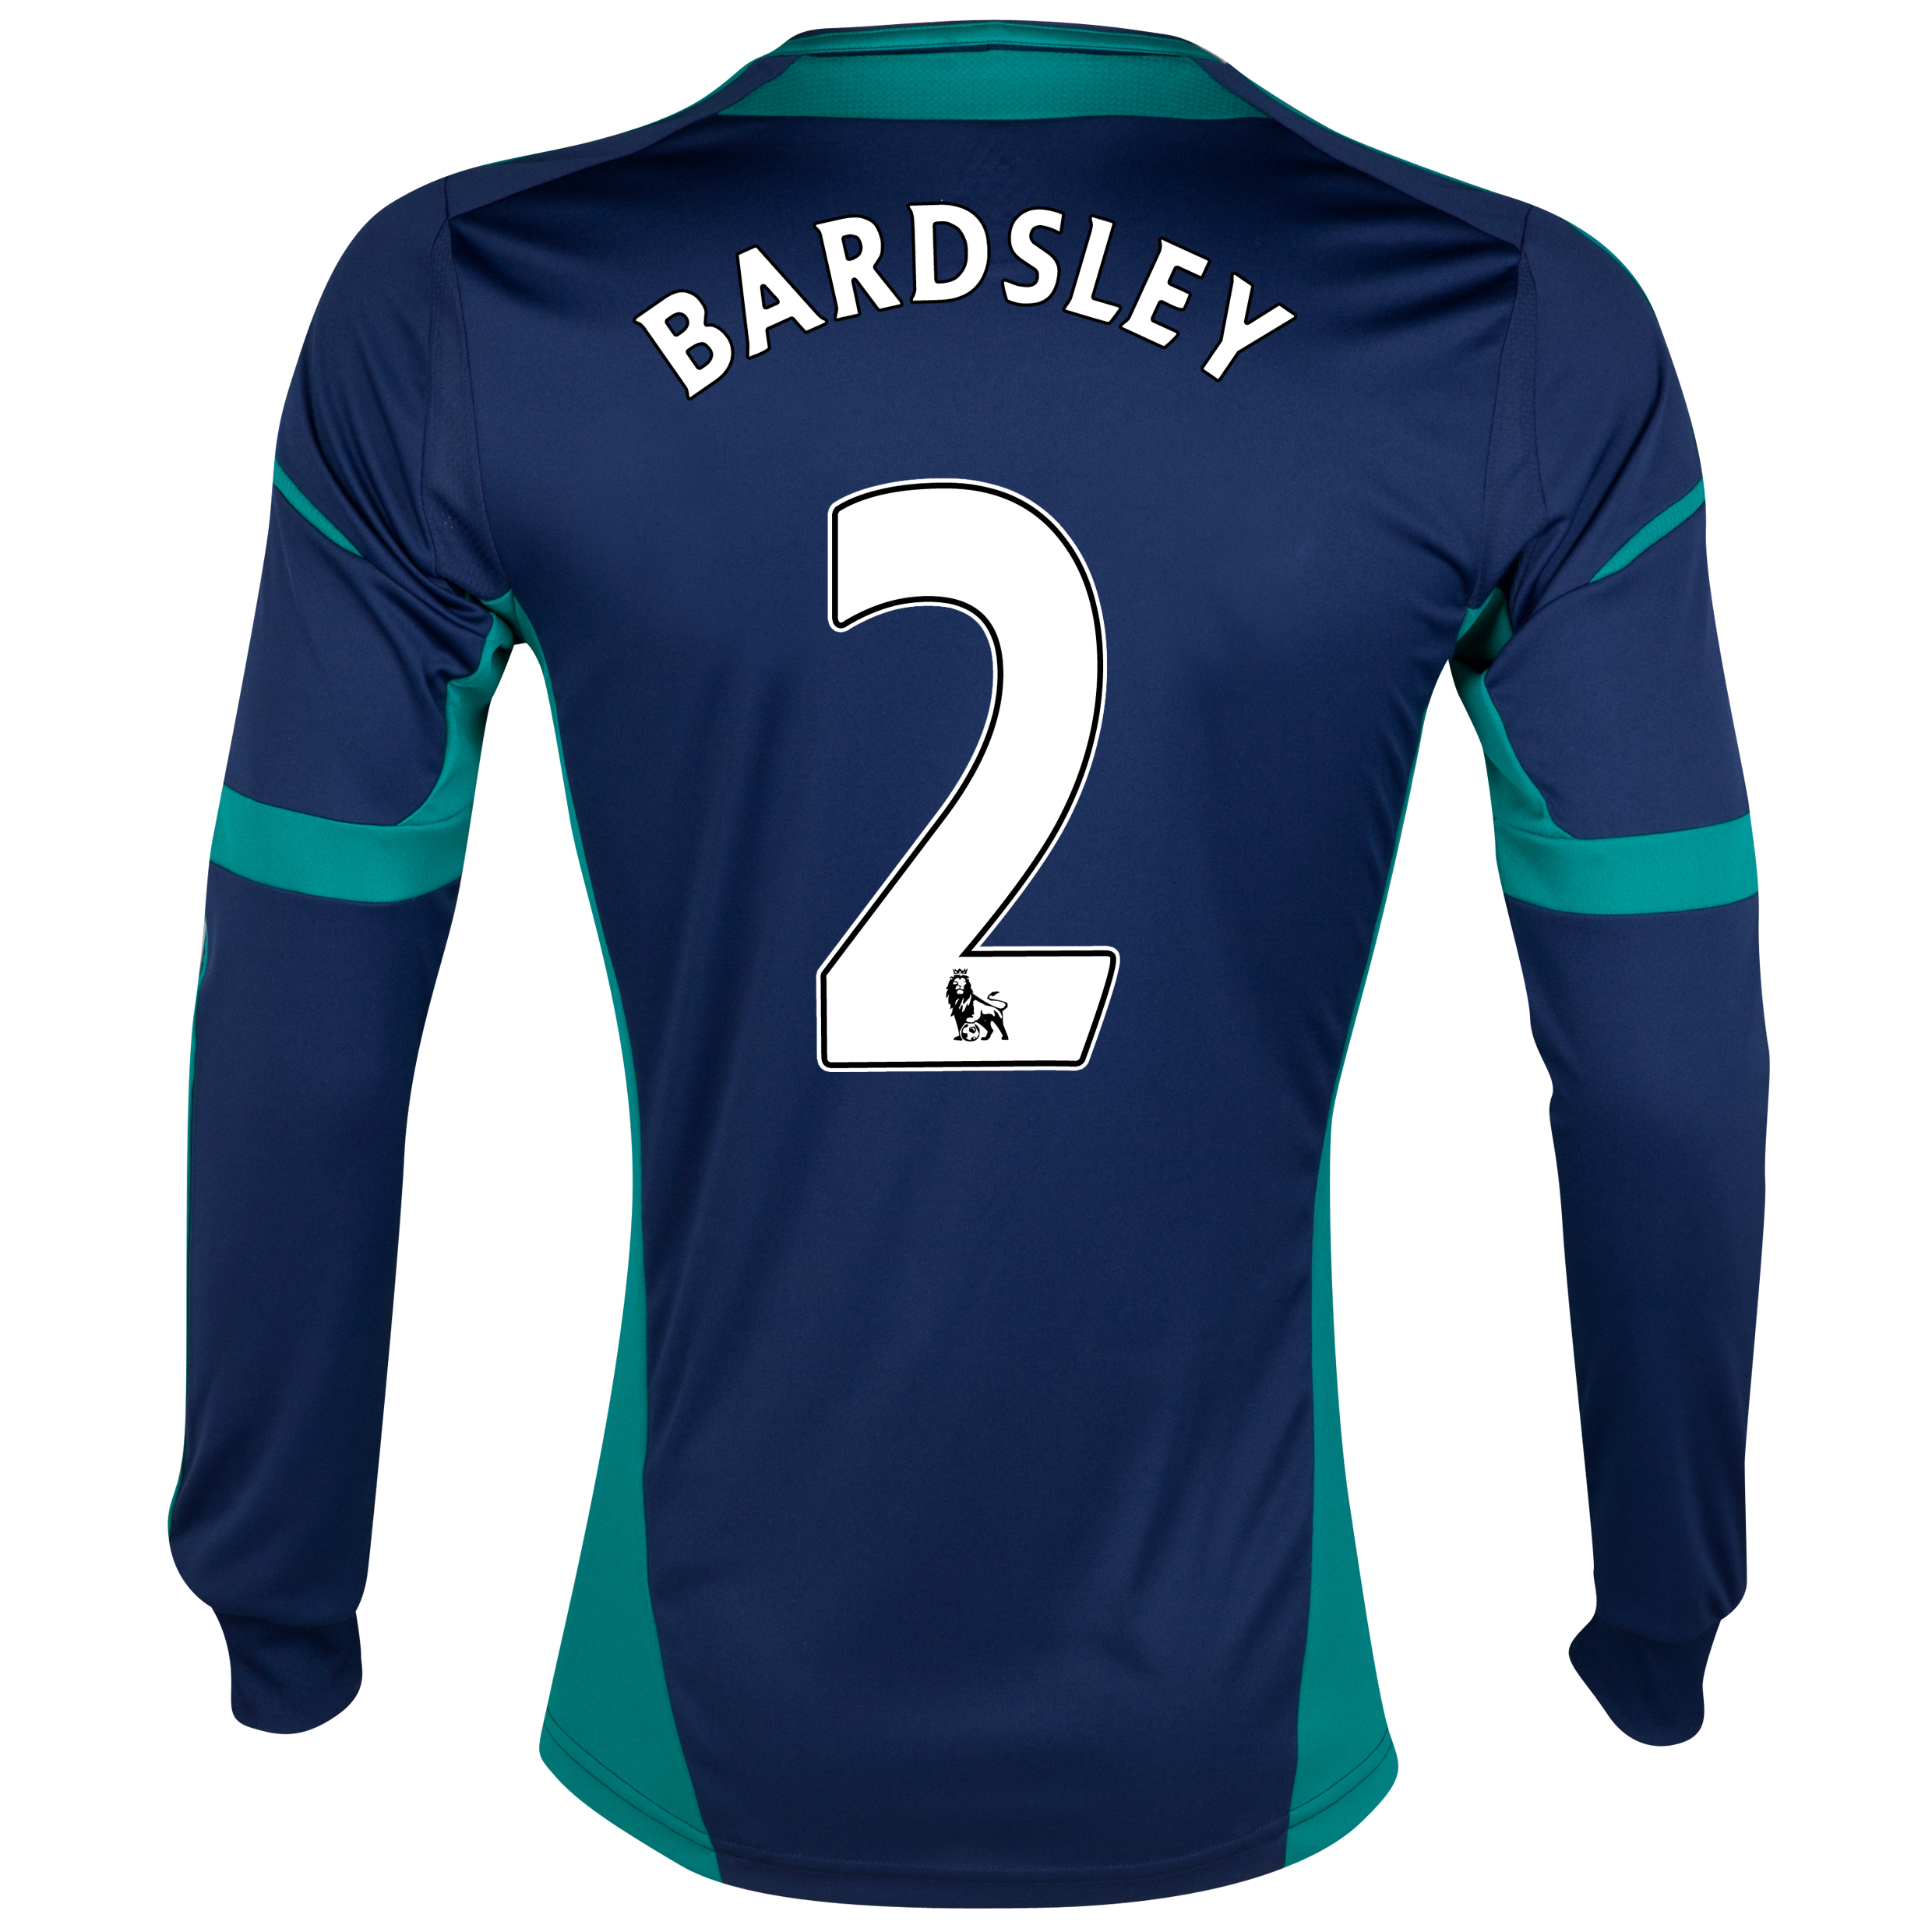 Sunderland Away Shirt 2012/13 - Long Sleeved - Junior with Bardsley 2 printing